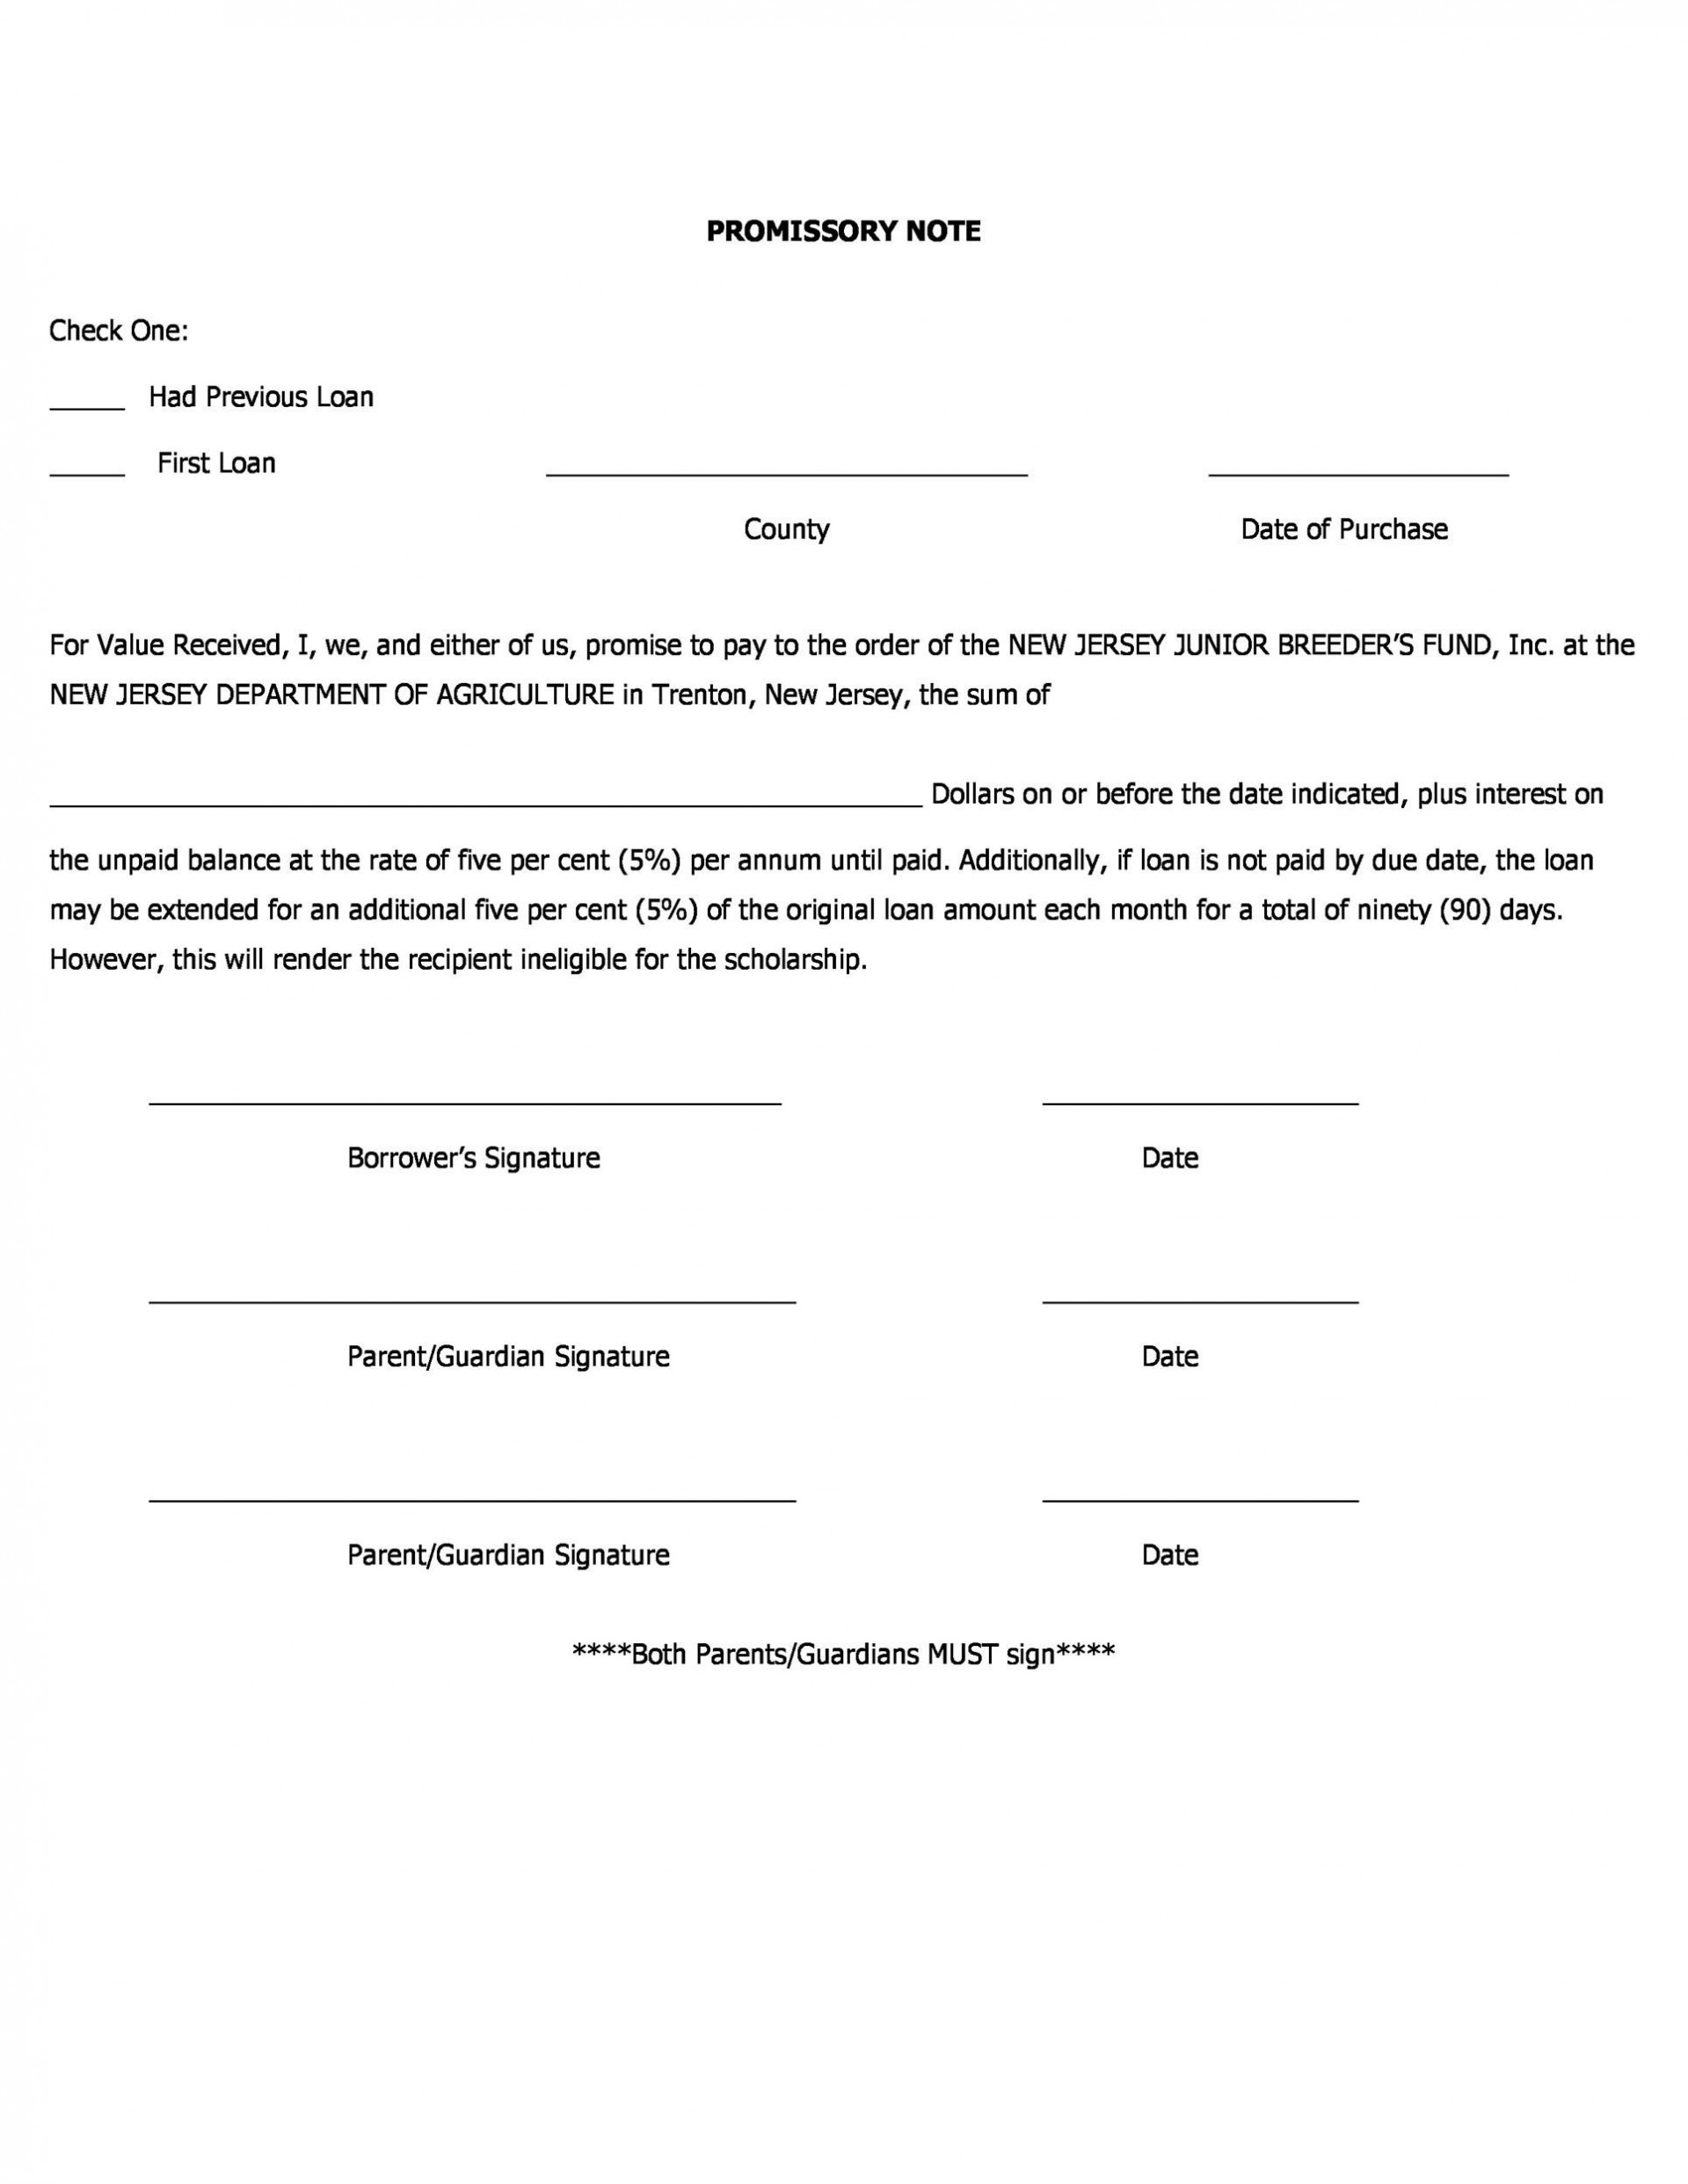 004 Marvelou Loan Promissory Note Template High Resolution  Ppp Form Personal Format Student1920